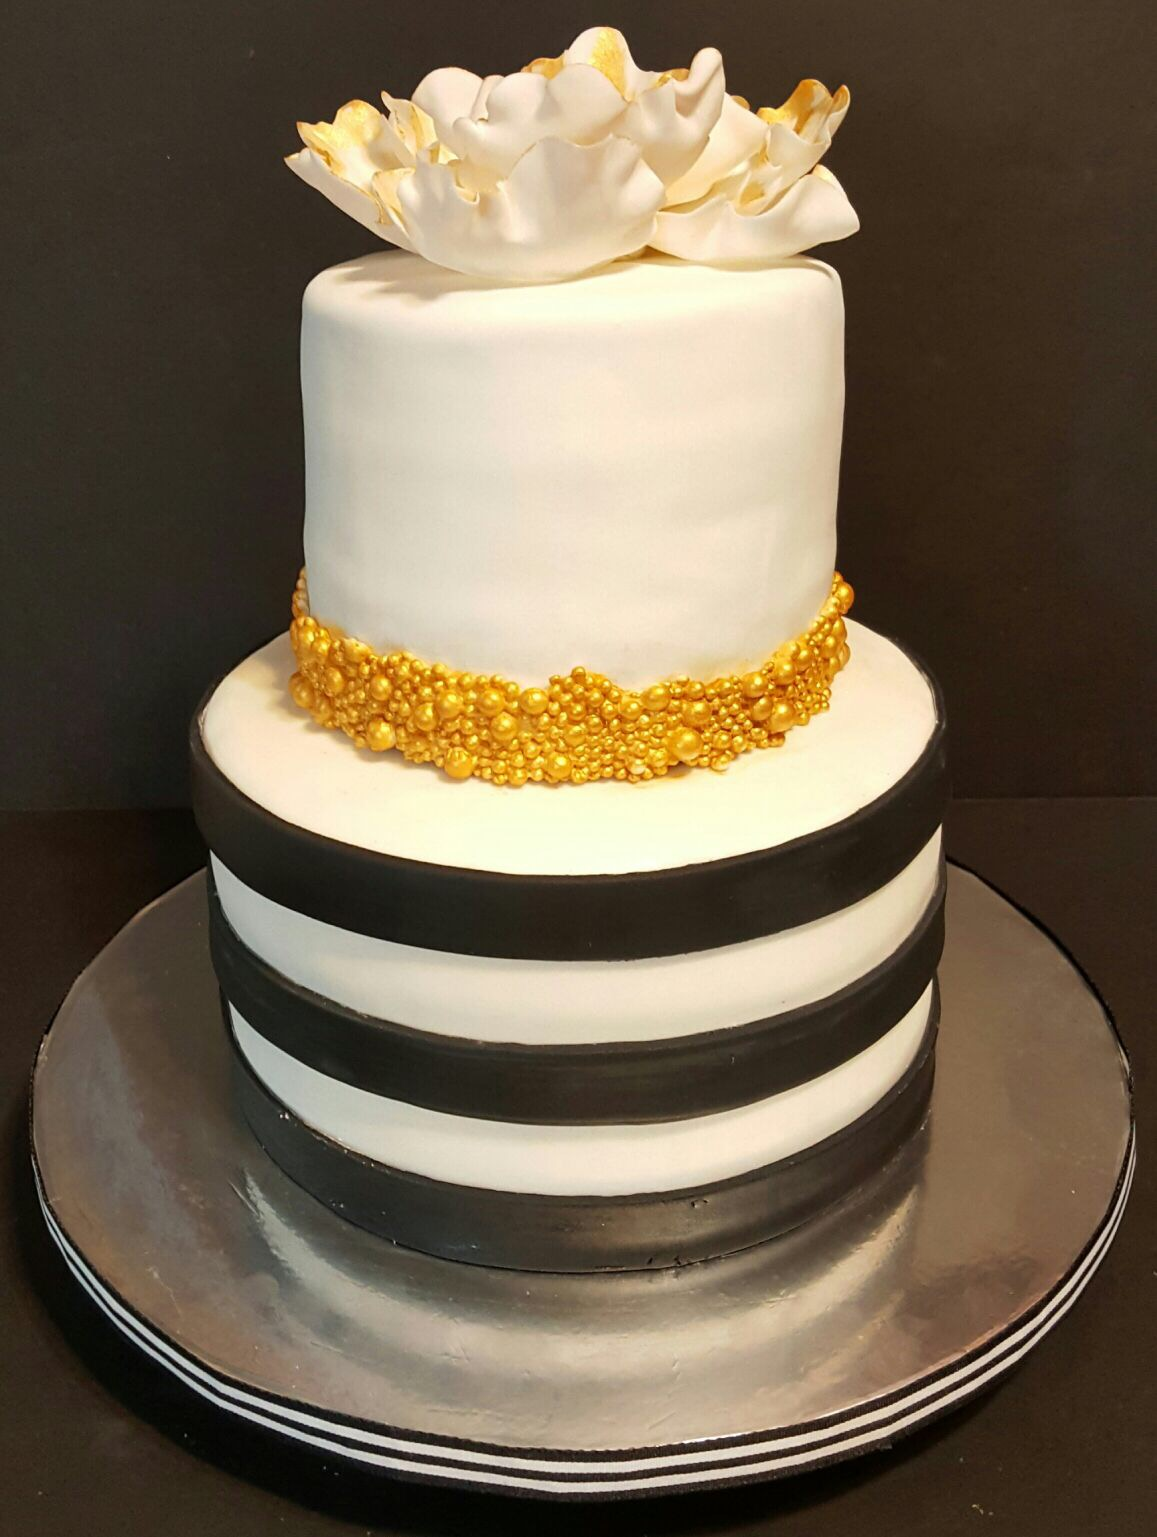 Fios de Mel by Elizabete Costa Cakes and Sweet New York - 2 tier cake with gold flower 2.JPG